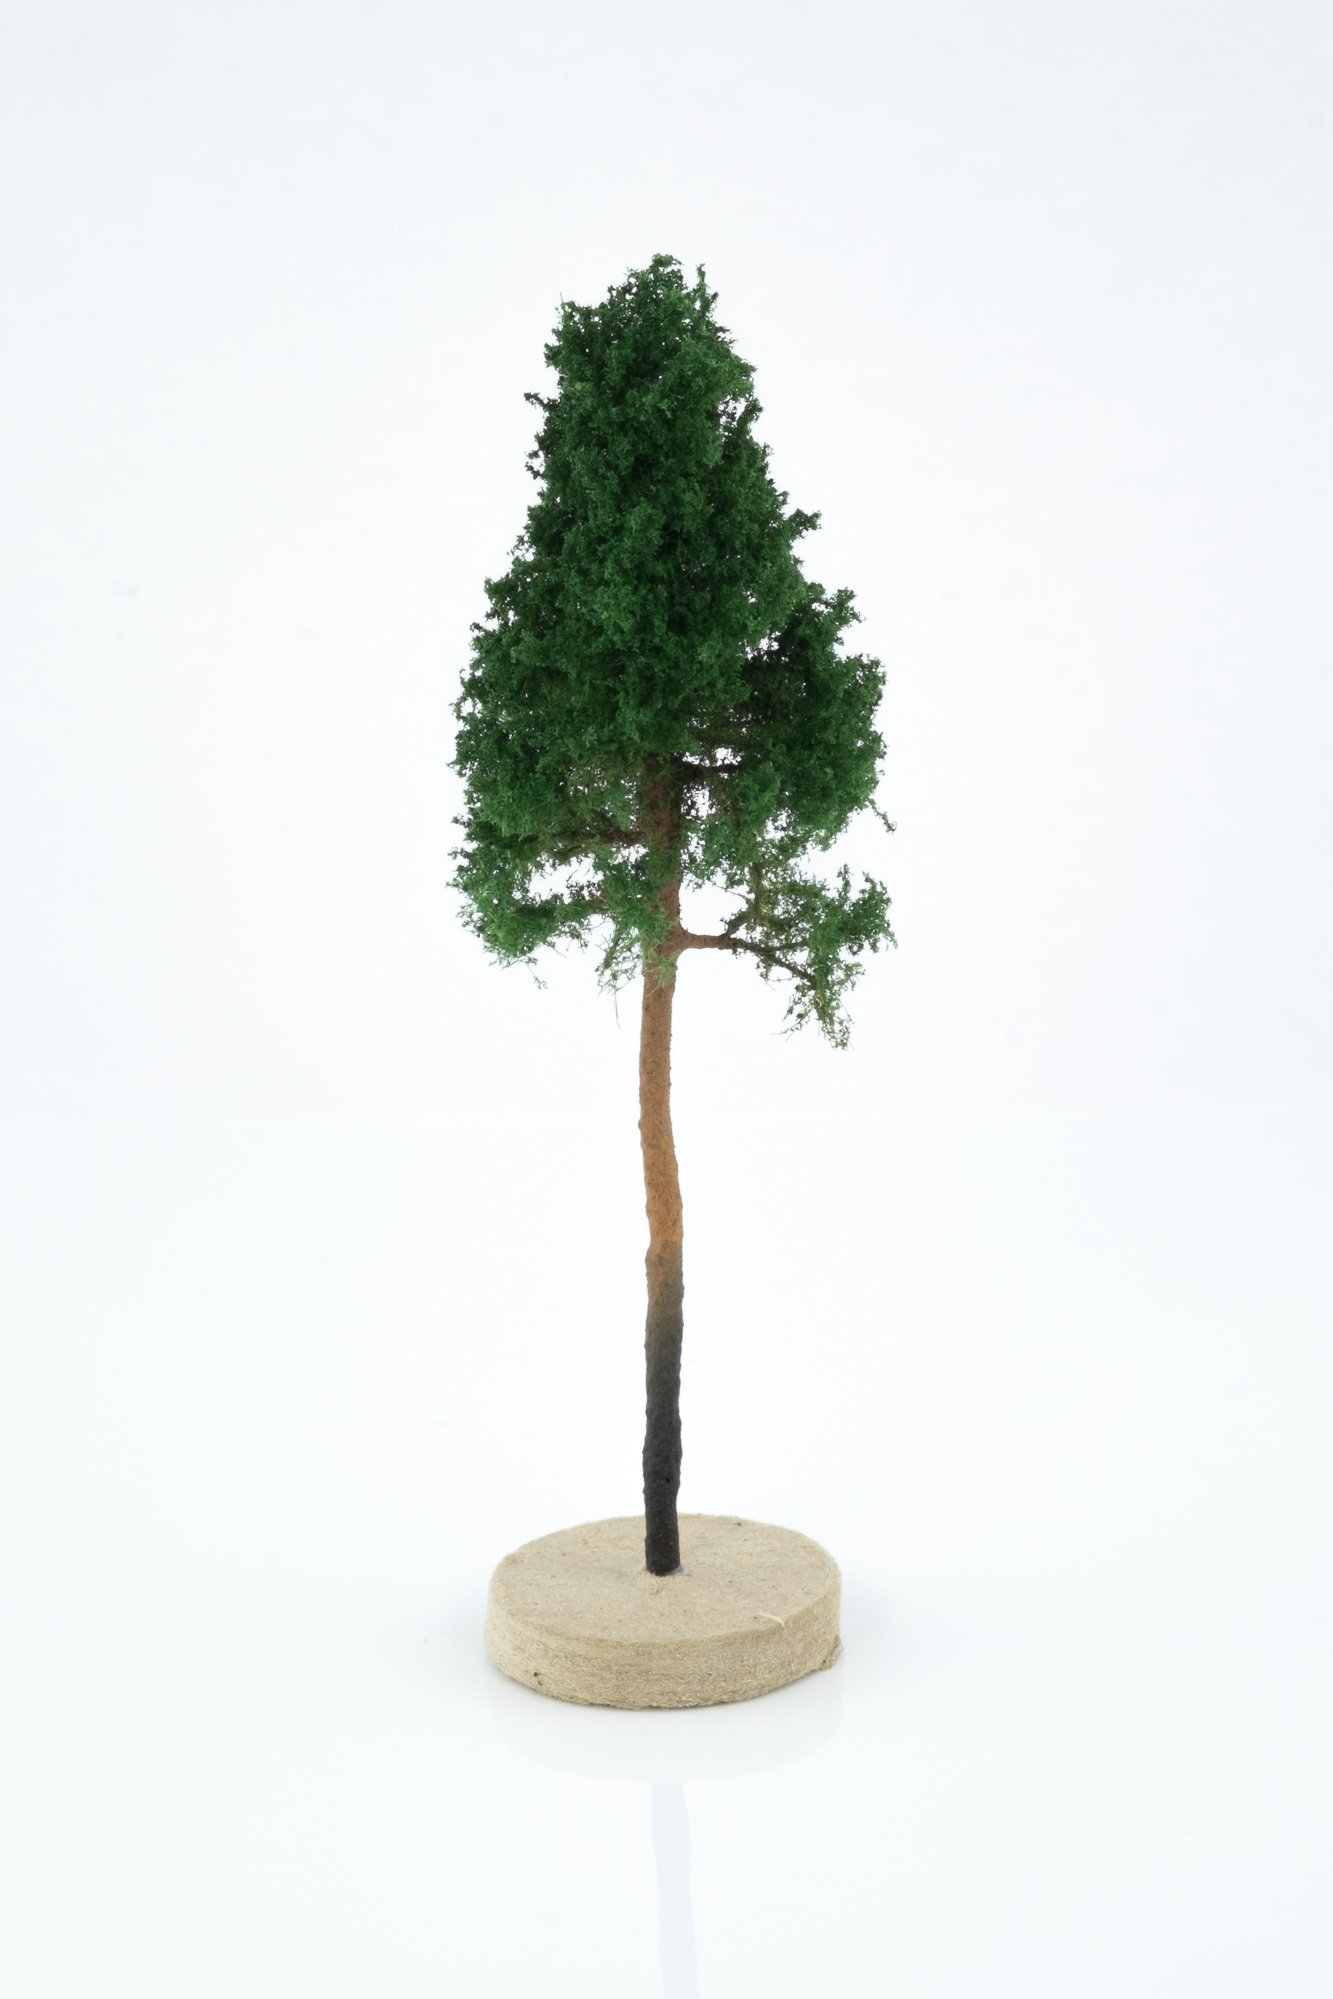 Hand-made, green, young pine tree model. Size between 8 and 12 cm. Made from high quality model supplies by Primo Models.